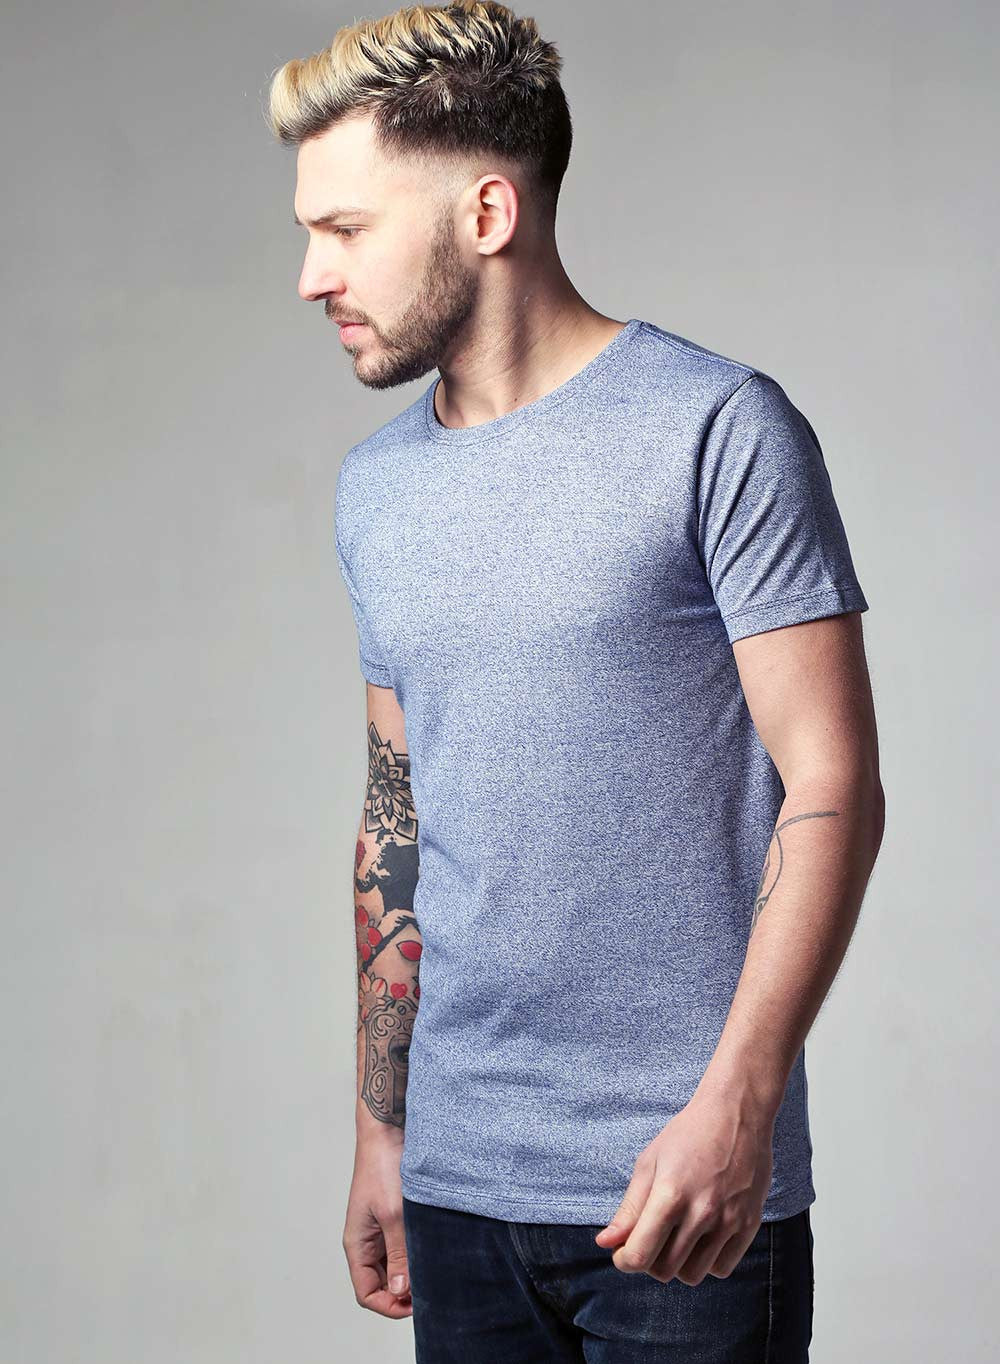 Lindbergh Slim Fit Blue Marl T-shirt - LoveClothing.com - 4